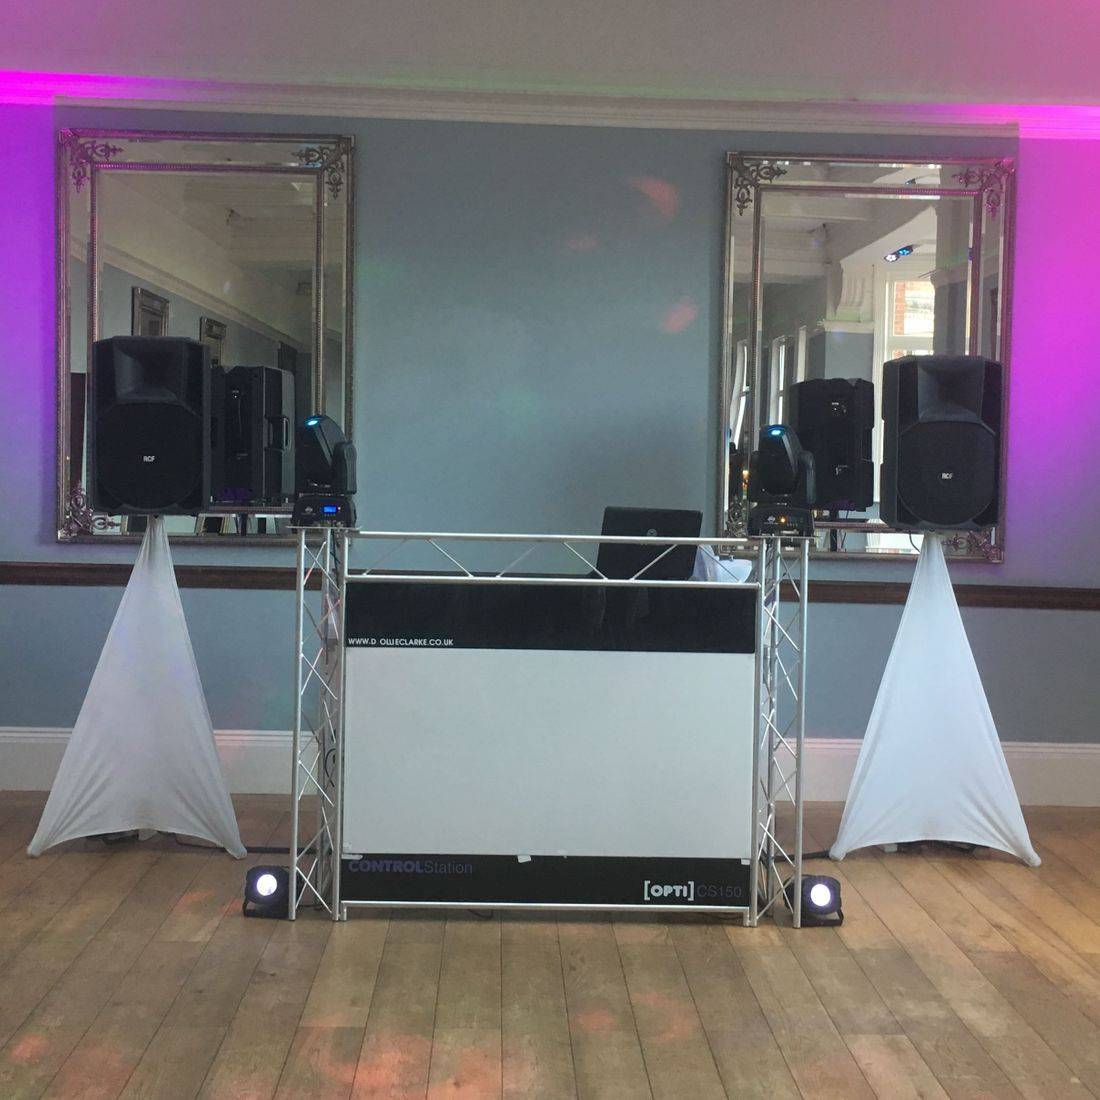 Staffordshire Wedding DJ Pendrell Hall StaffordshireDJ